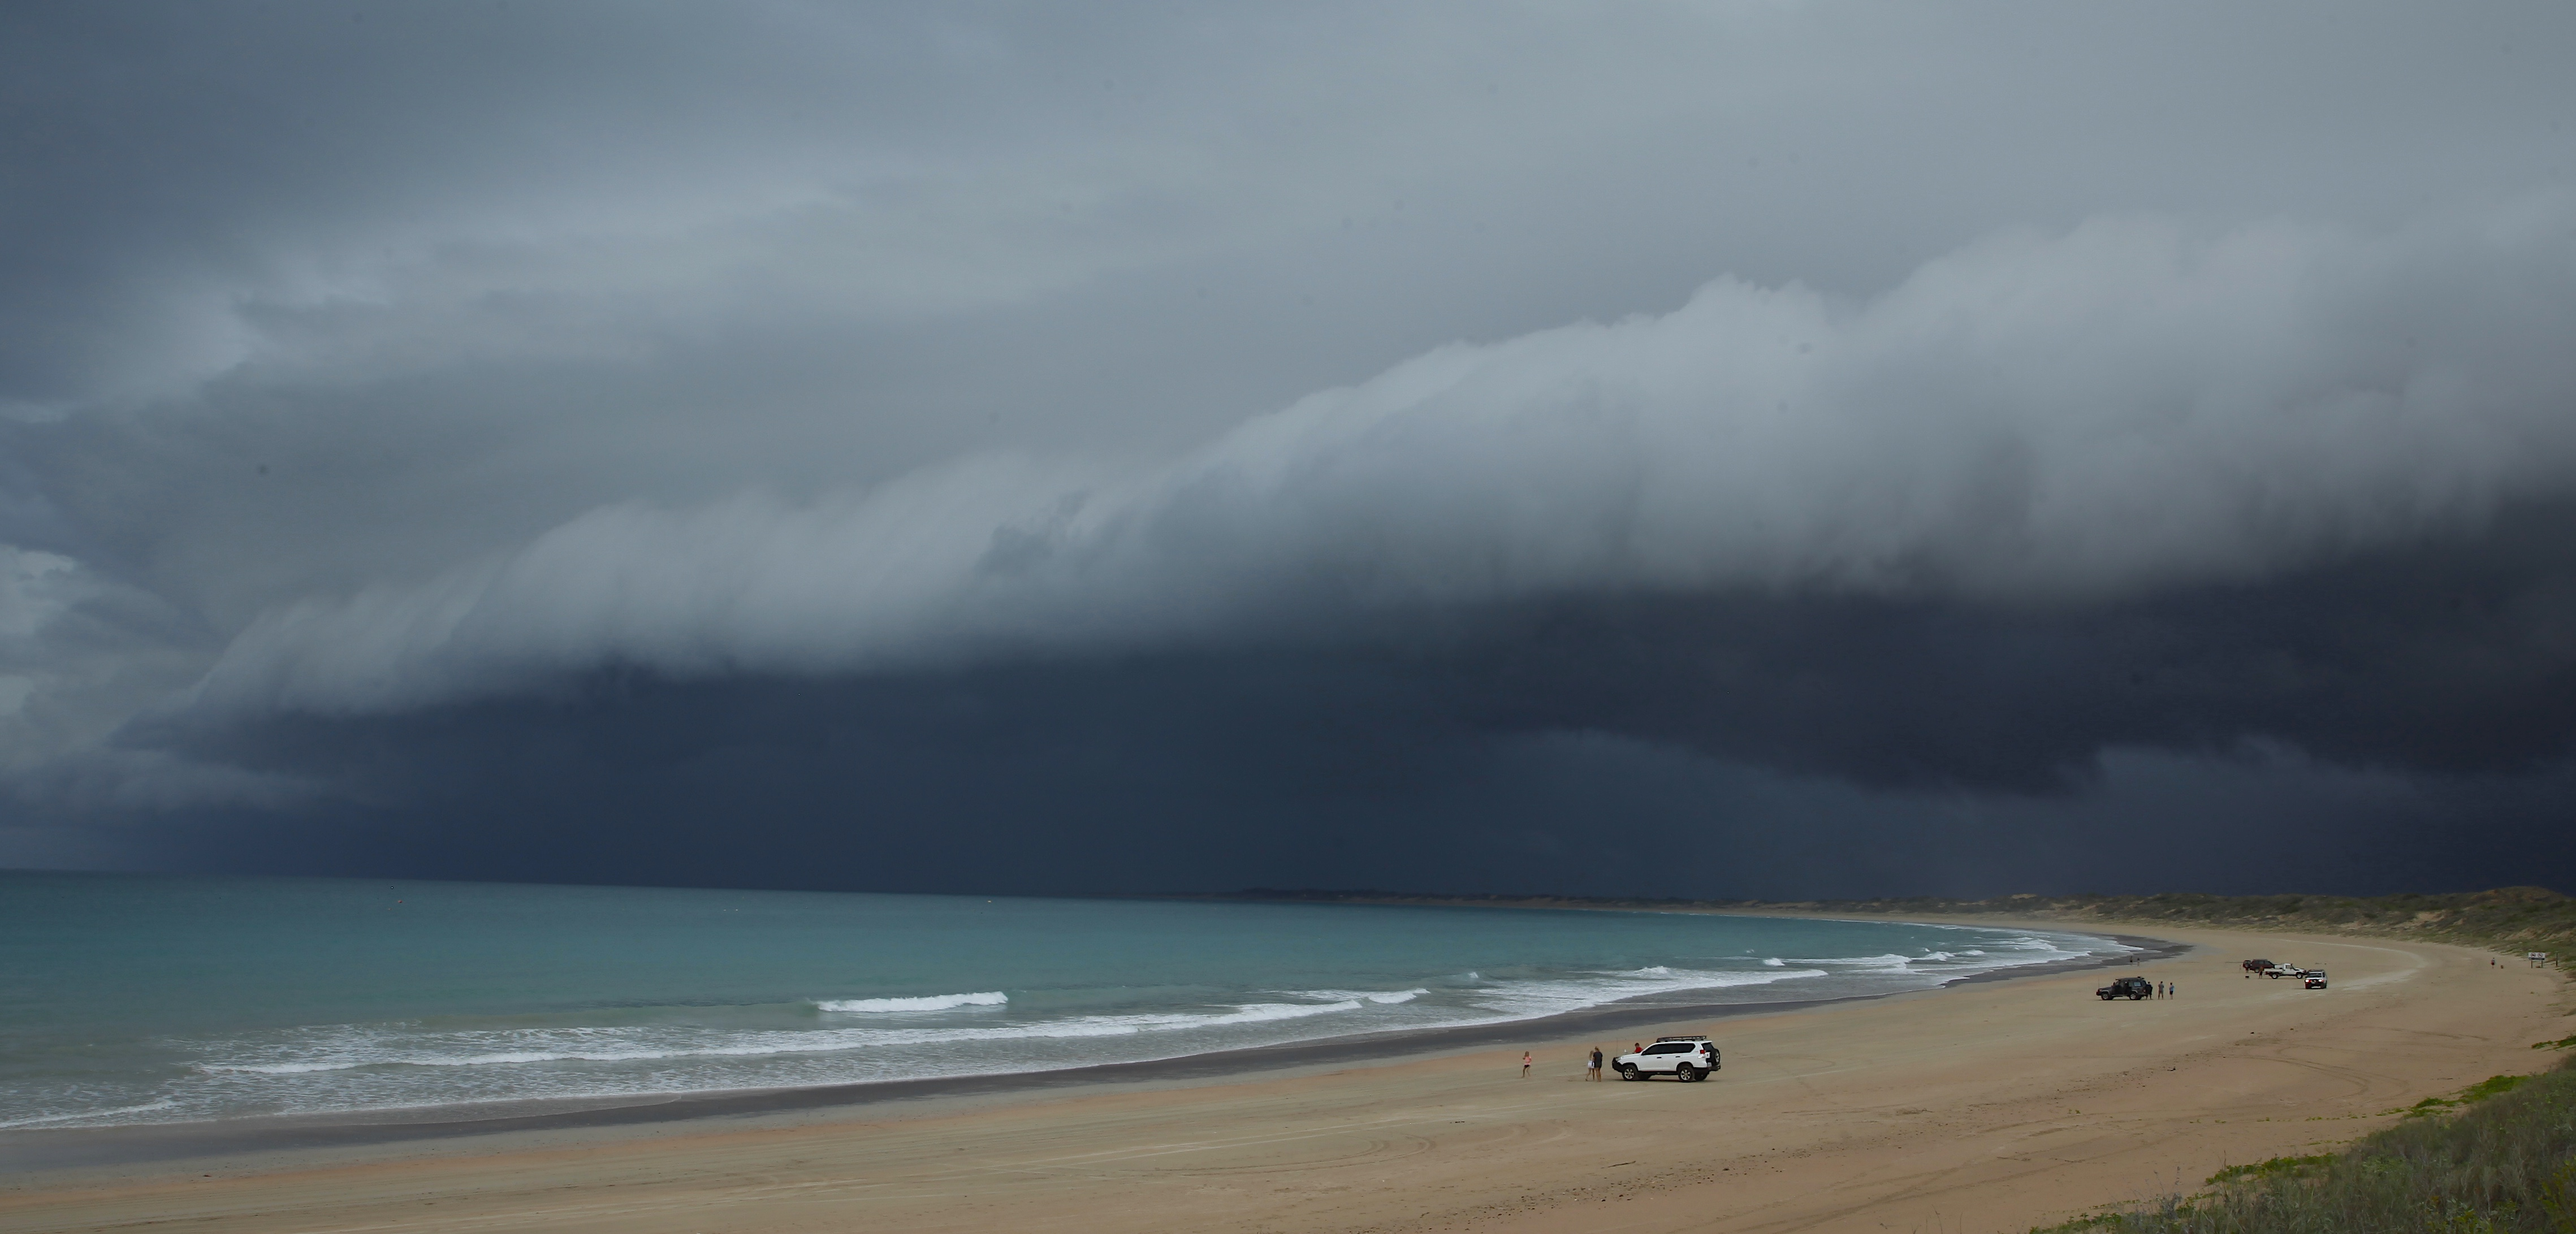 Broome_2018_Jan_Storm copy.jpg